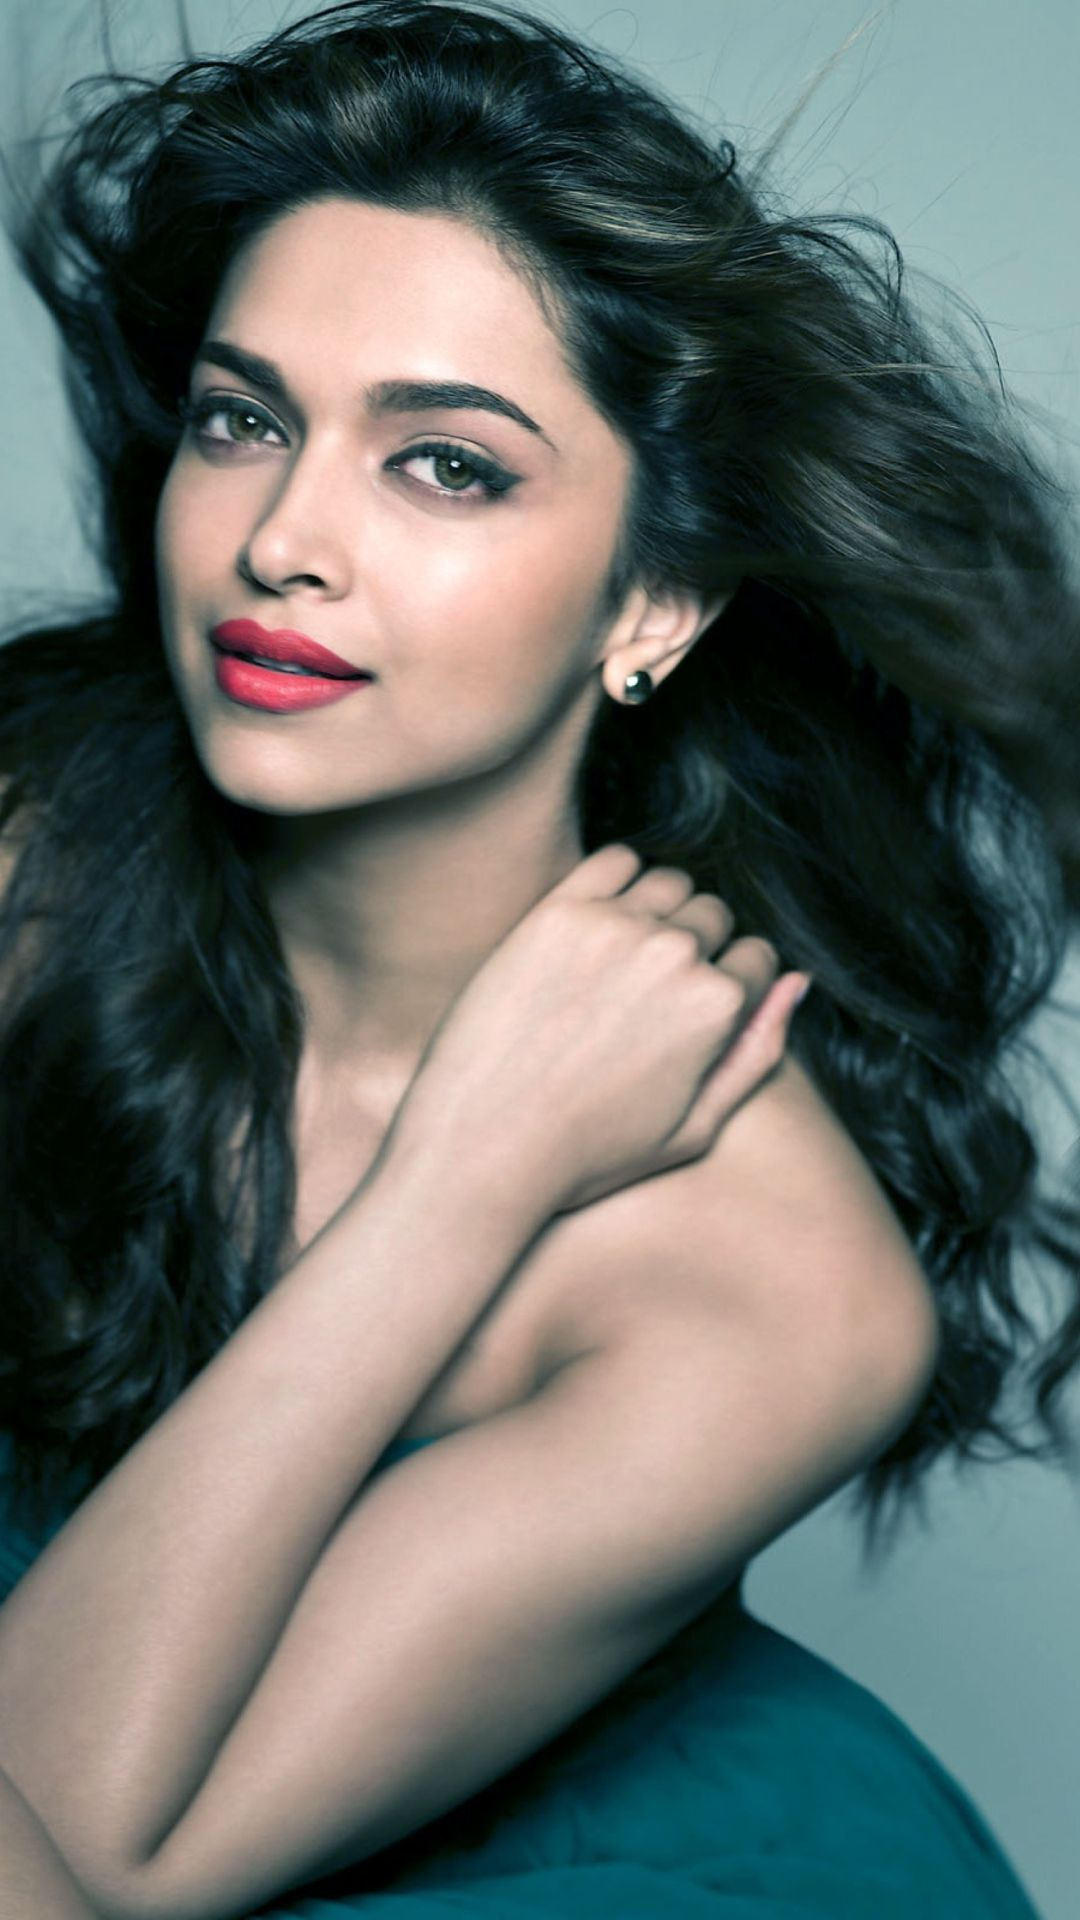 Deepika Padukone Age, Biography, Husband and Networth